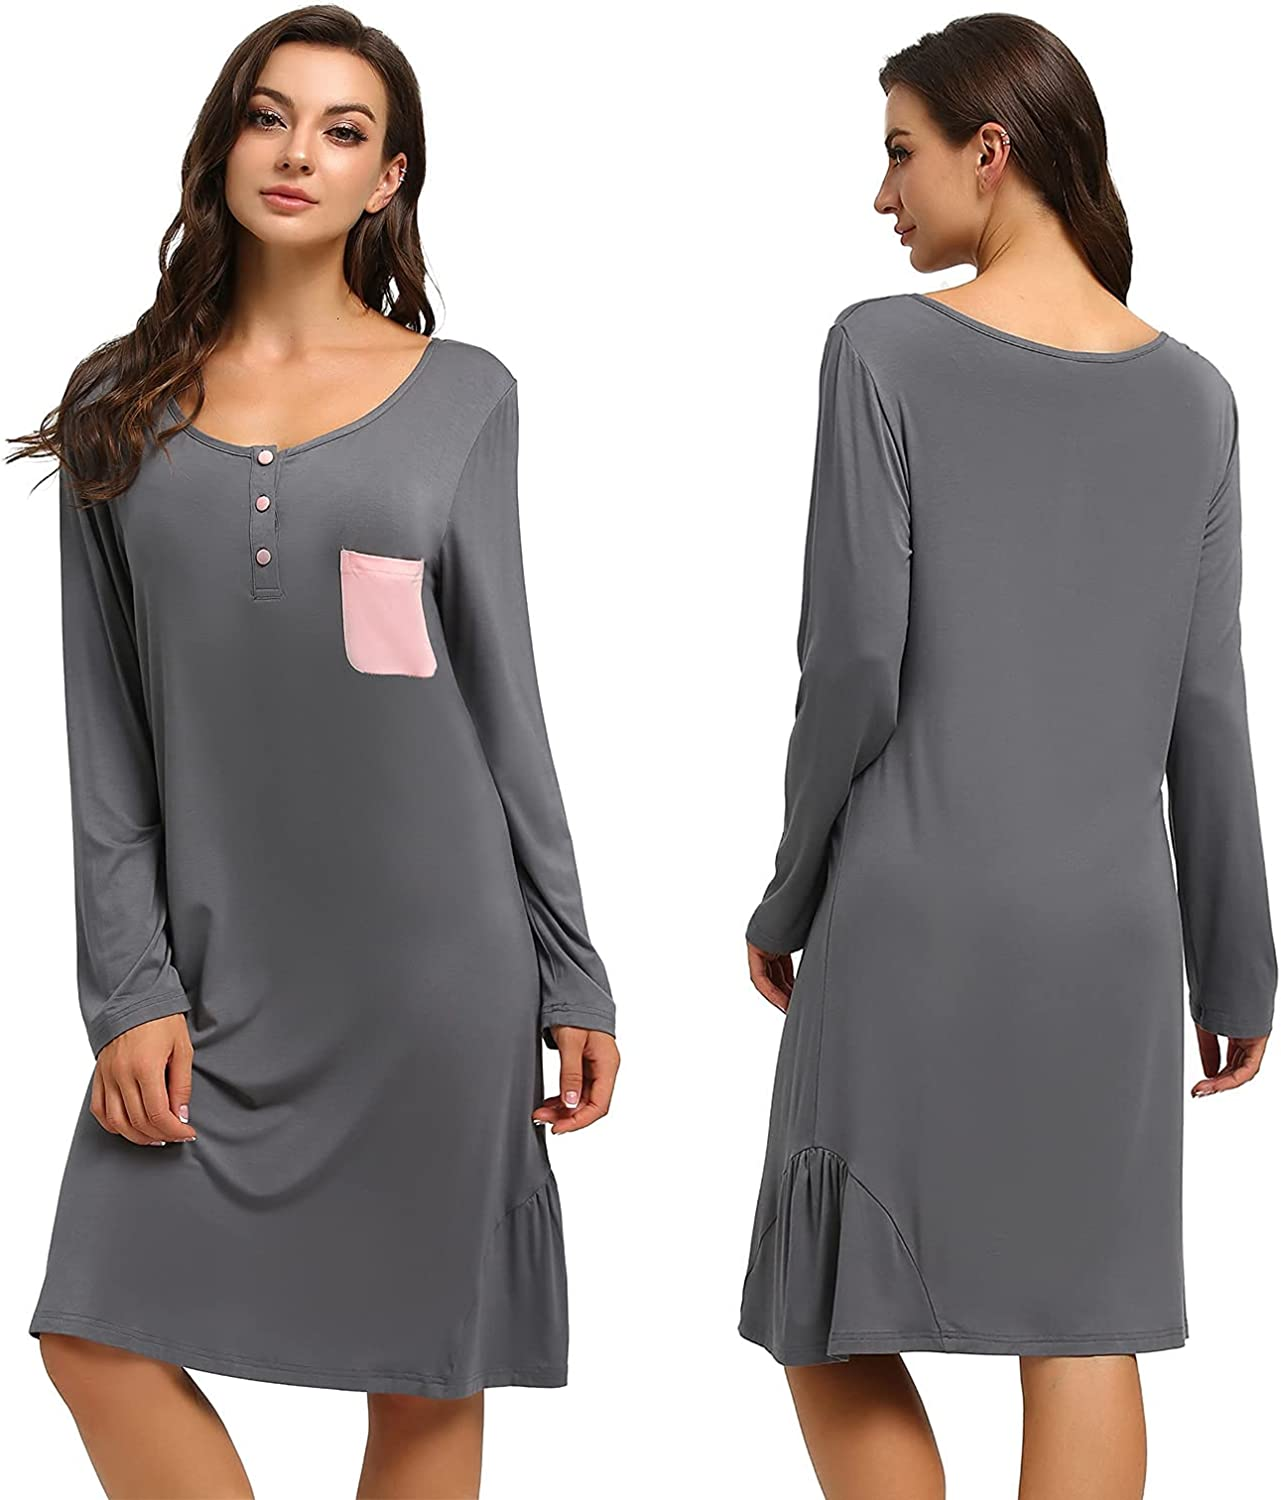 Night Shirts for Women Direct store Long Nightgowns Sleeve Pajamas Size Plus Import